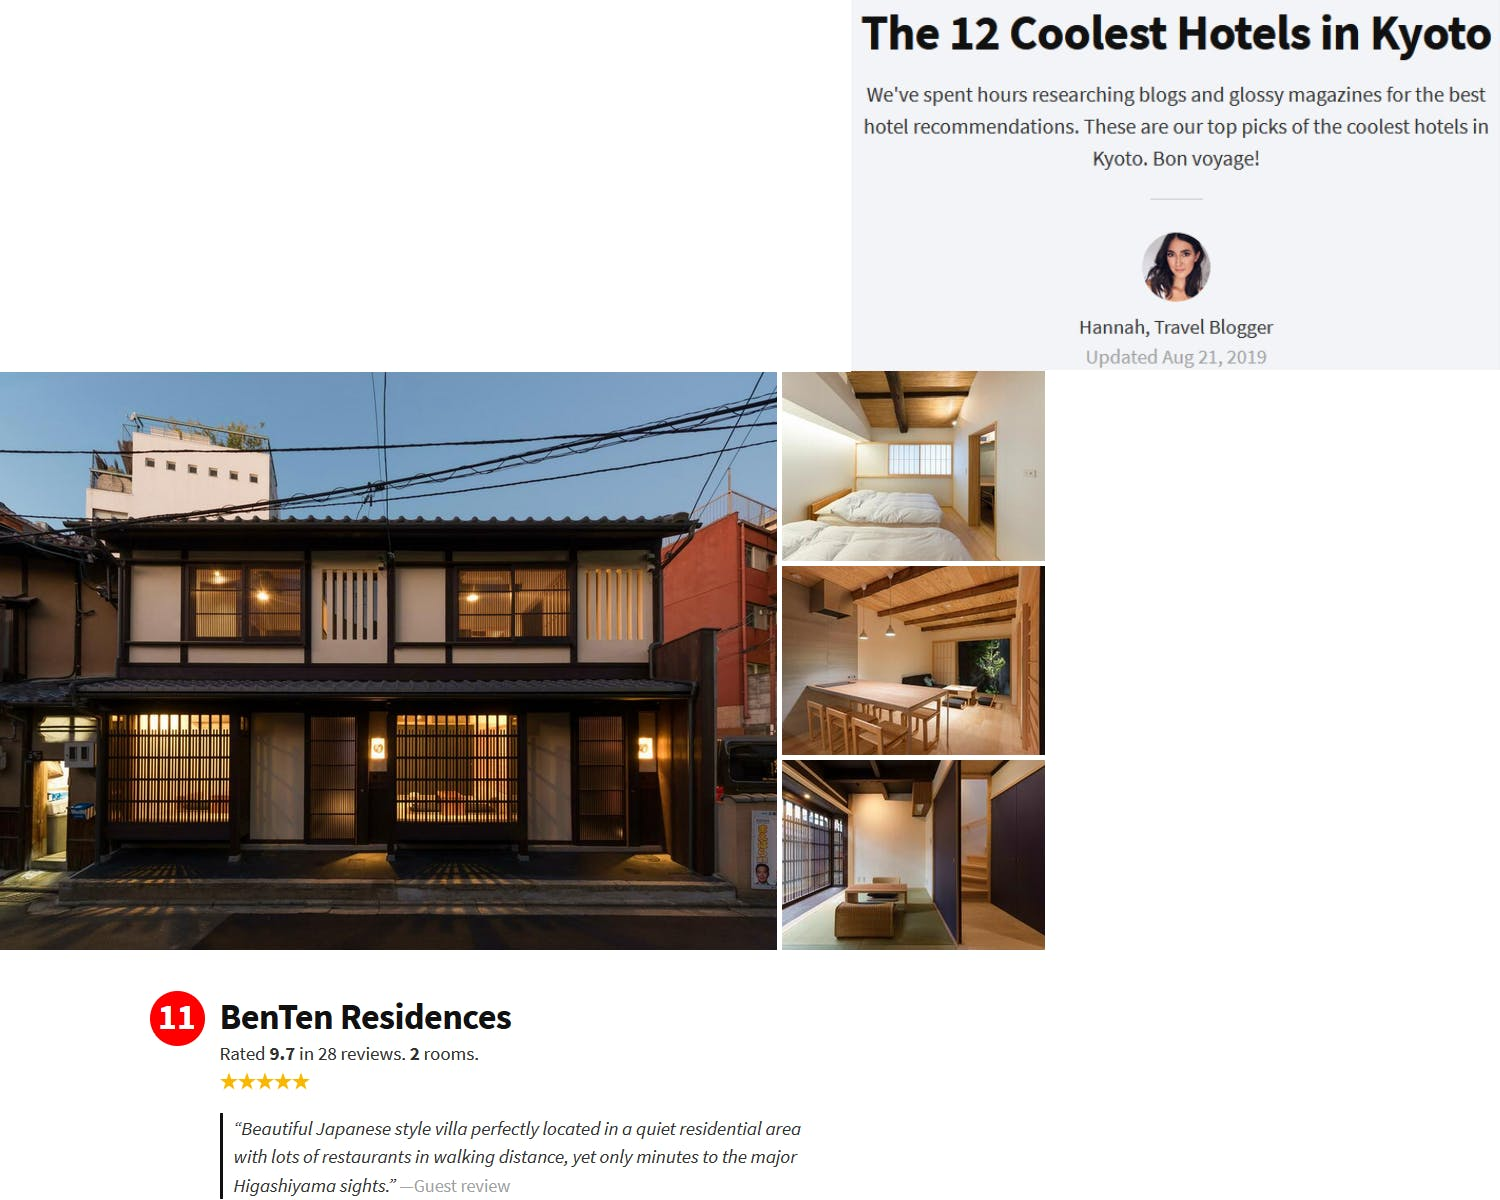 BenTen Residences - 12 Coolest Hotels in Kyoto by Handpicked Hotels.com